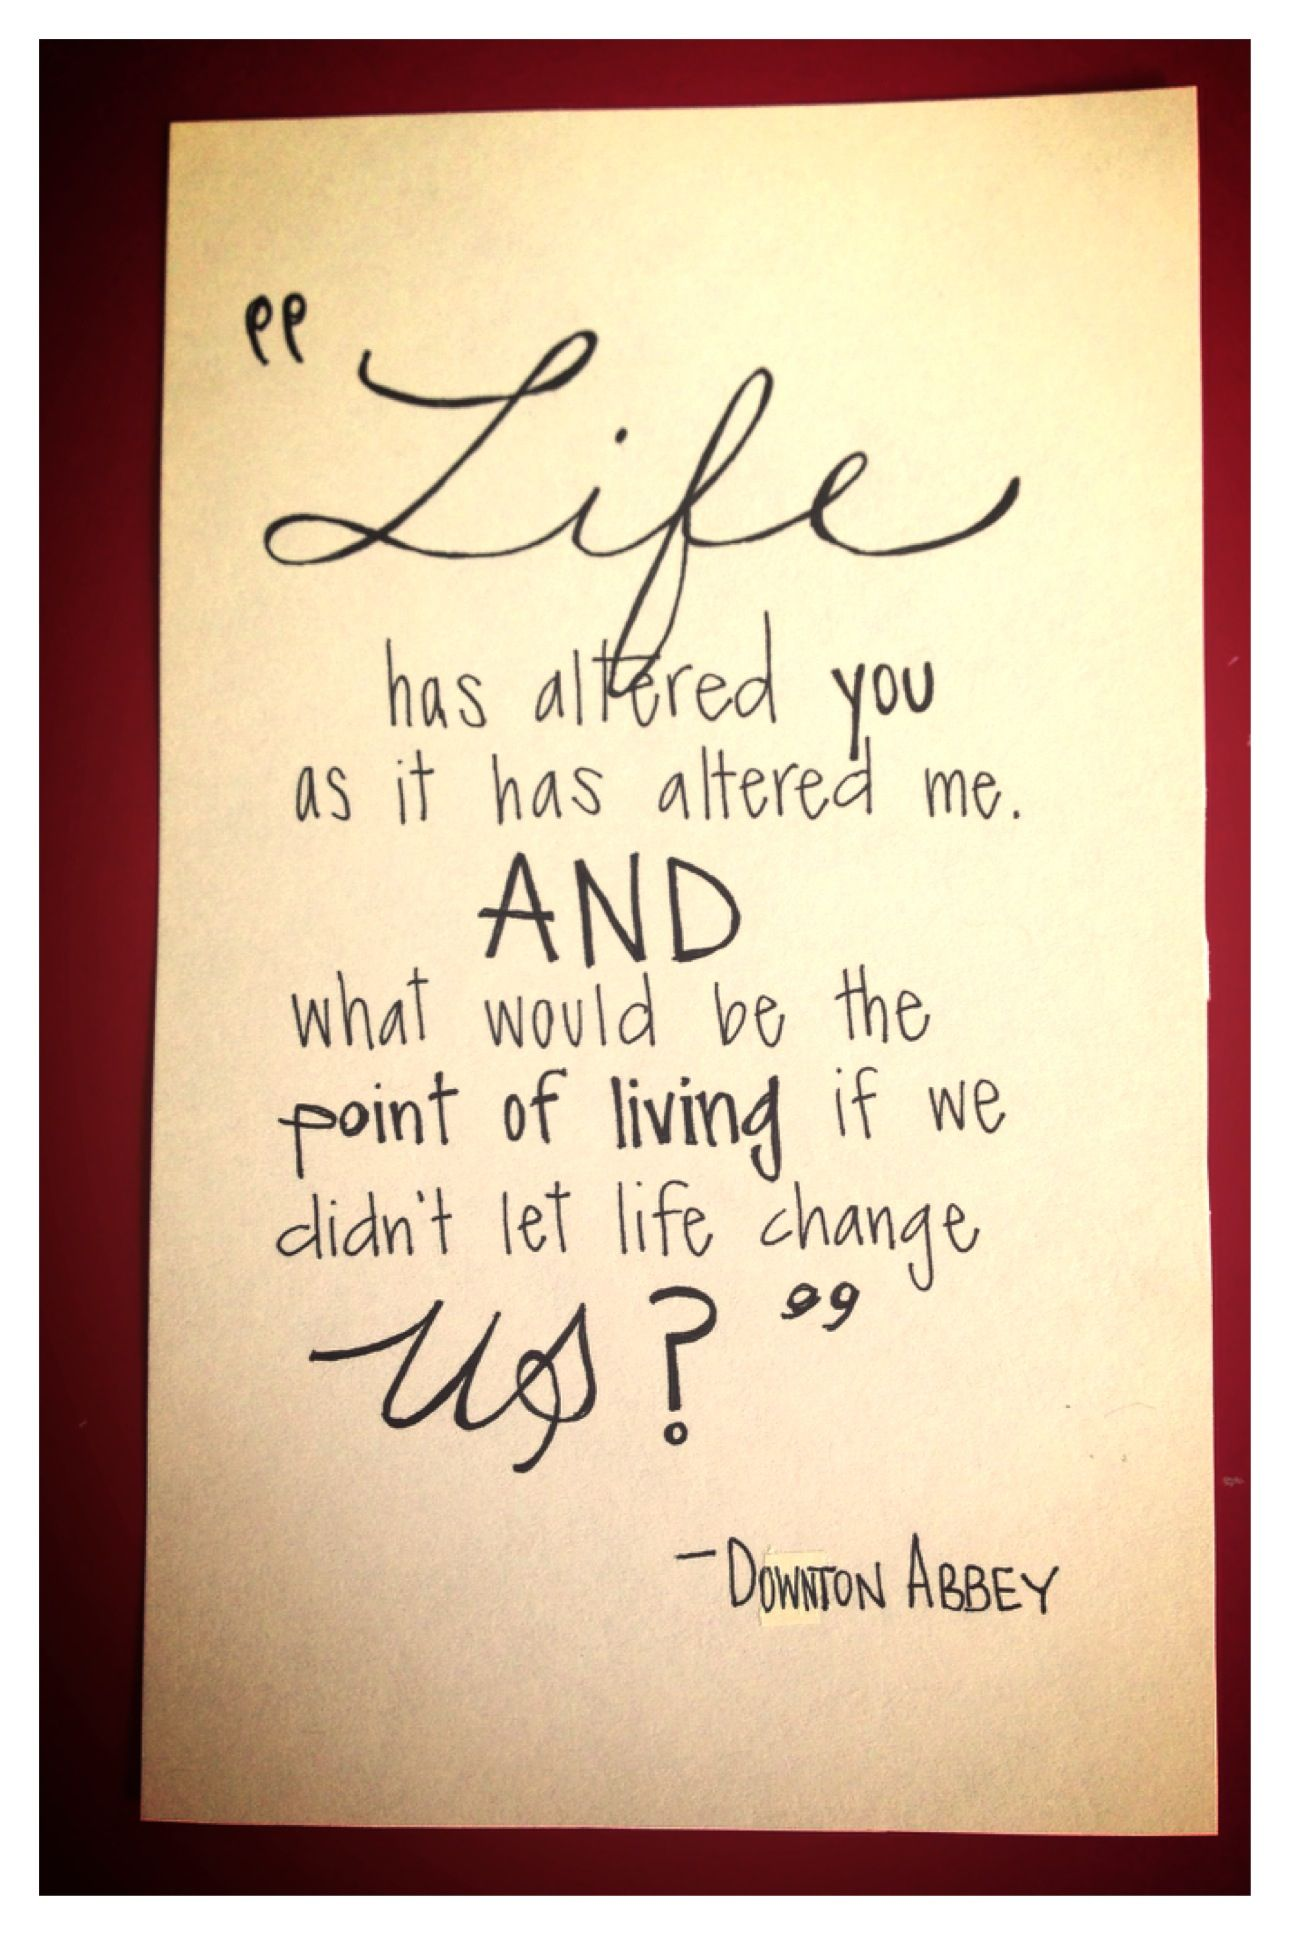 Quips N Quotes What Would Be The Point Of Living If We Didn't Let Life Change Us .